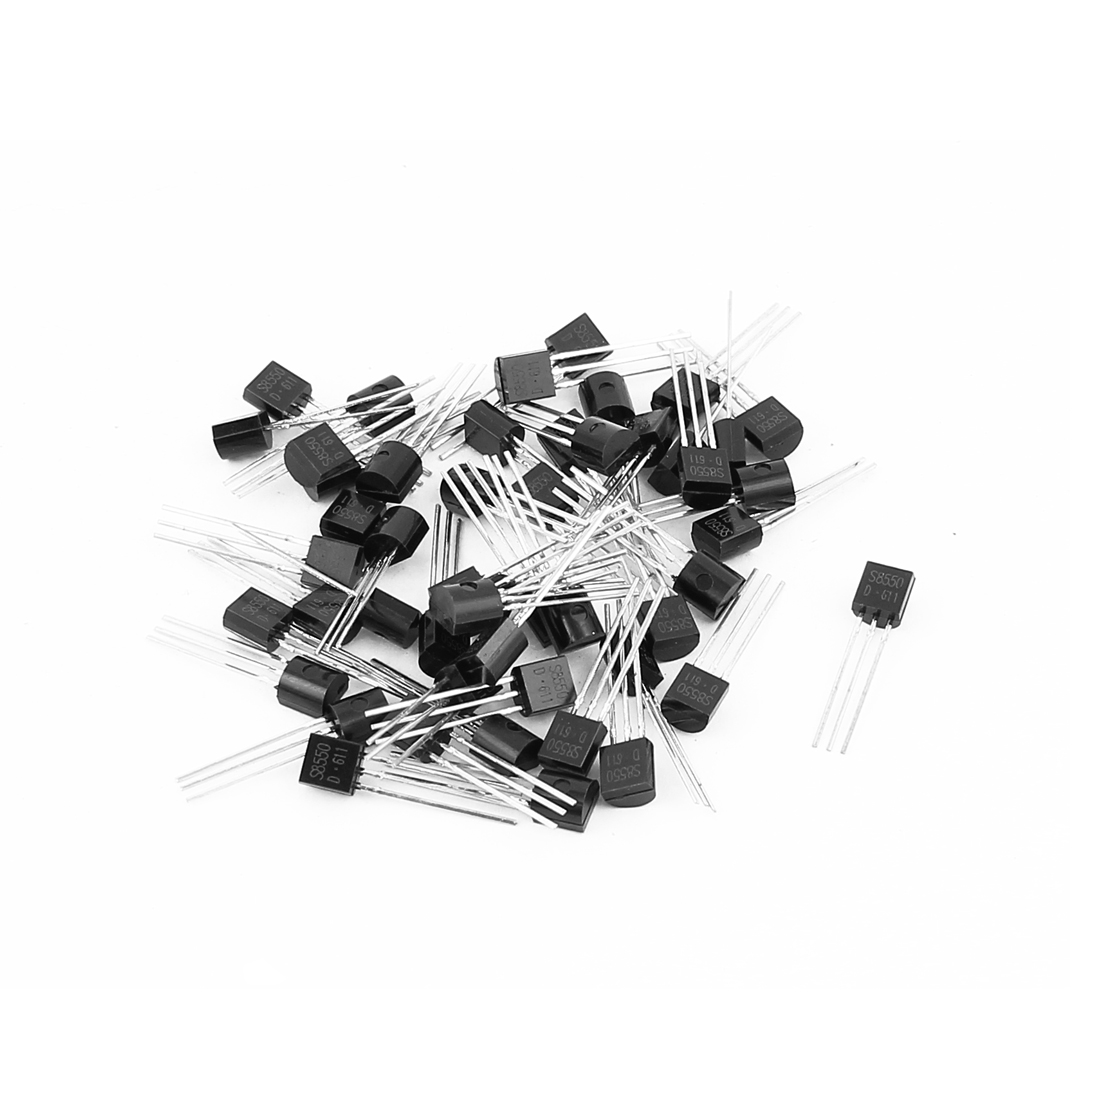 50 Pcs S8550 TO-92 PNP Bipolar Low Power Junction Transistors 40V 0.5A